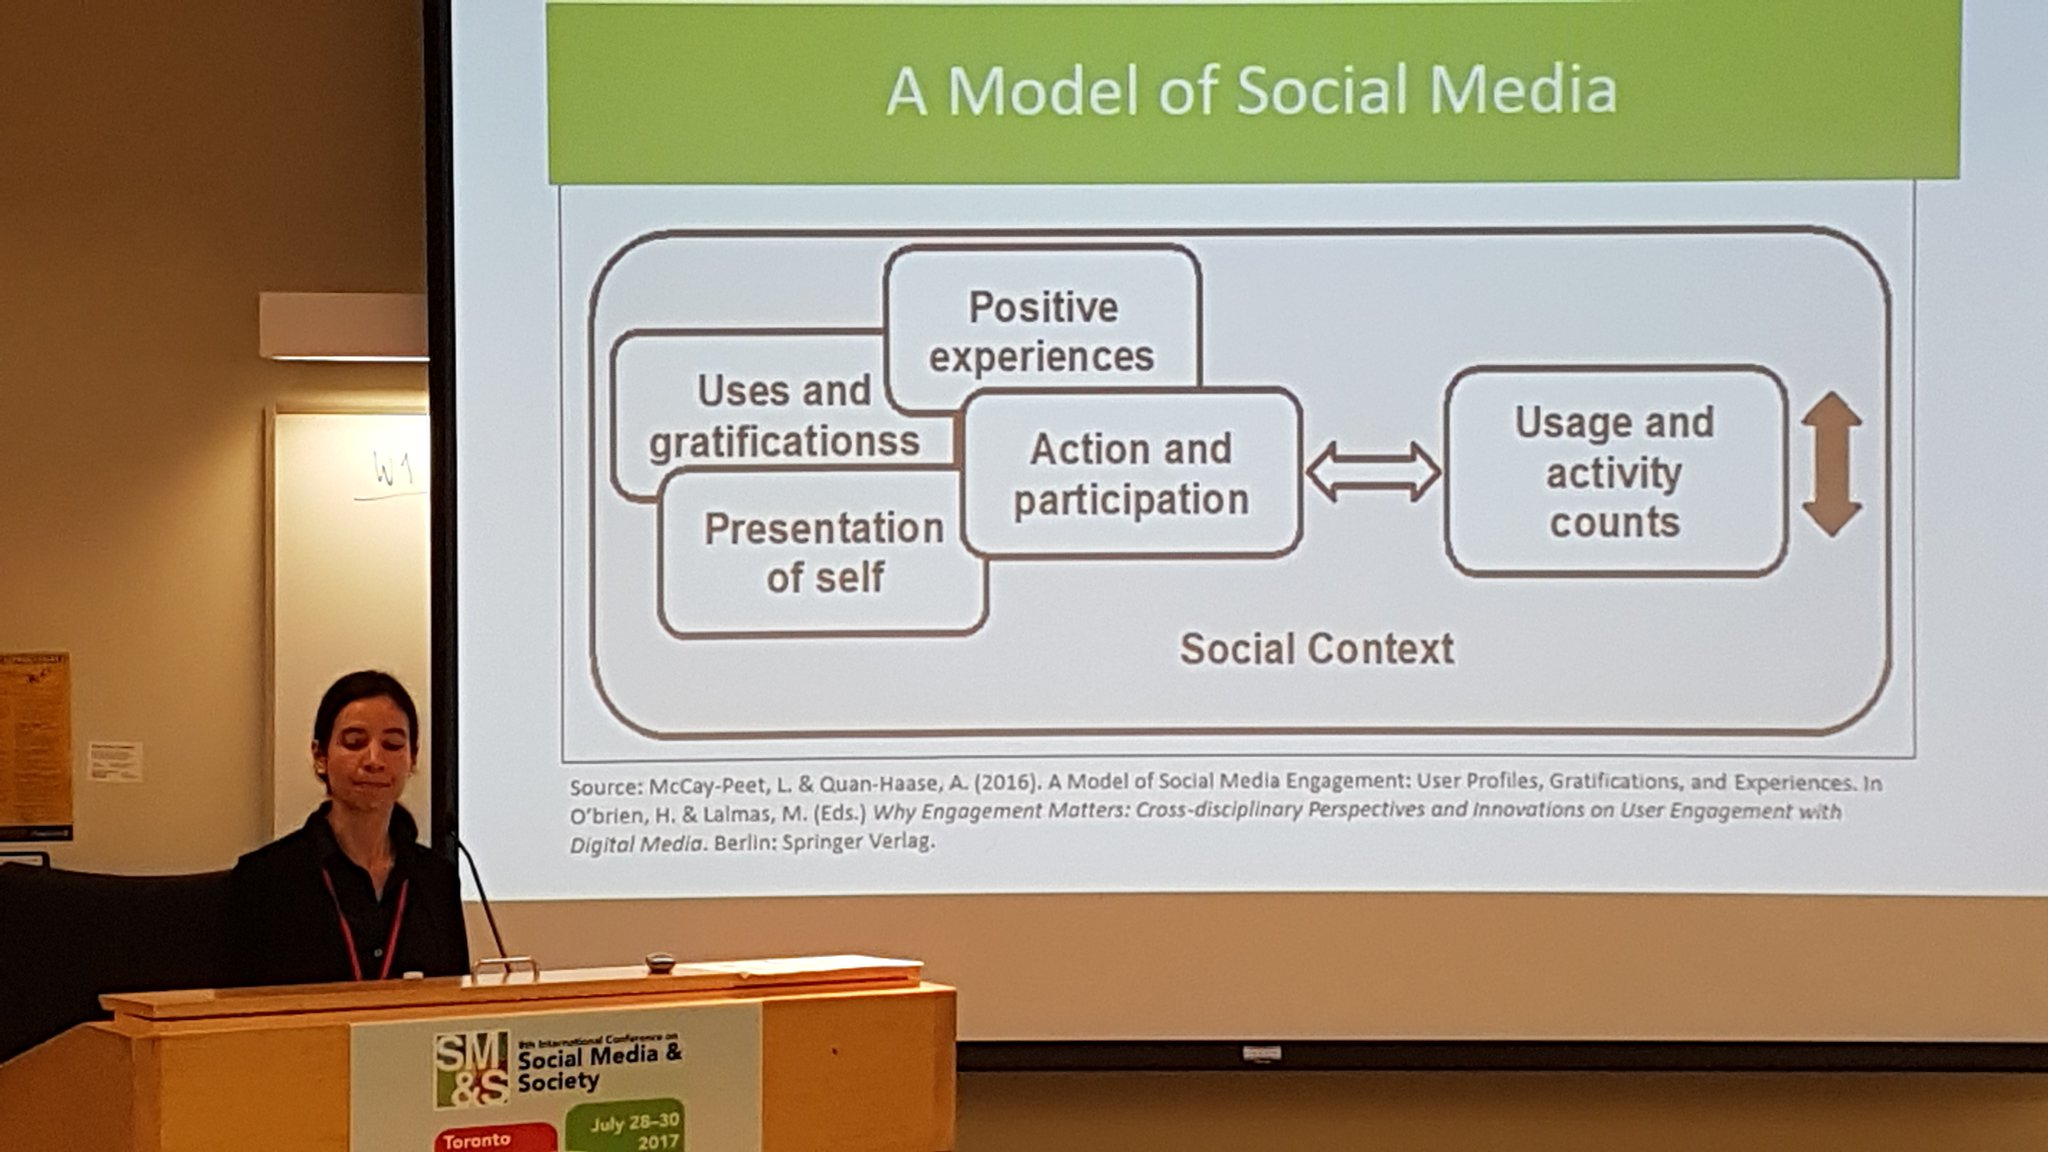 Prof. Quan-Haase presenting a model of social media engagement to facilitate duscussion on ethics for online research. #SMSociety https://t.co/YQtDc9ErJI